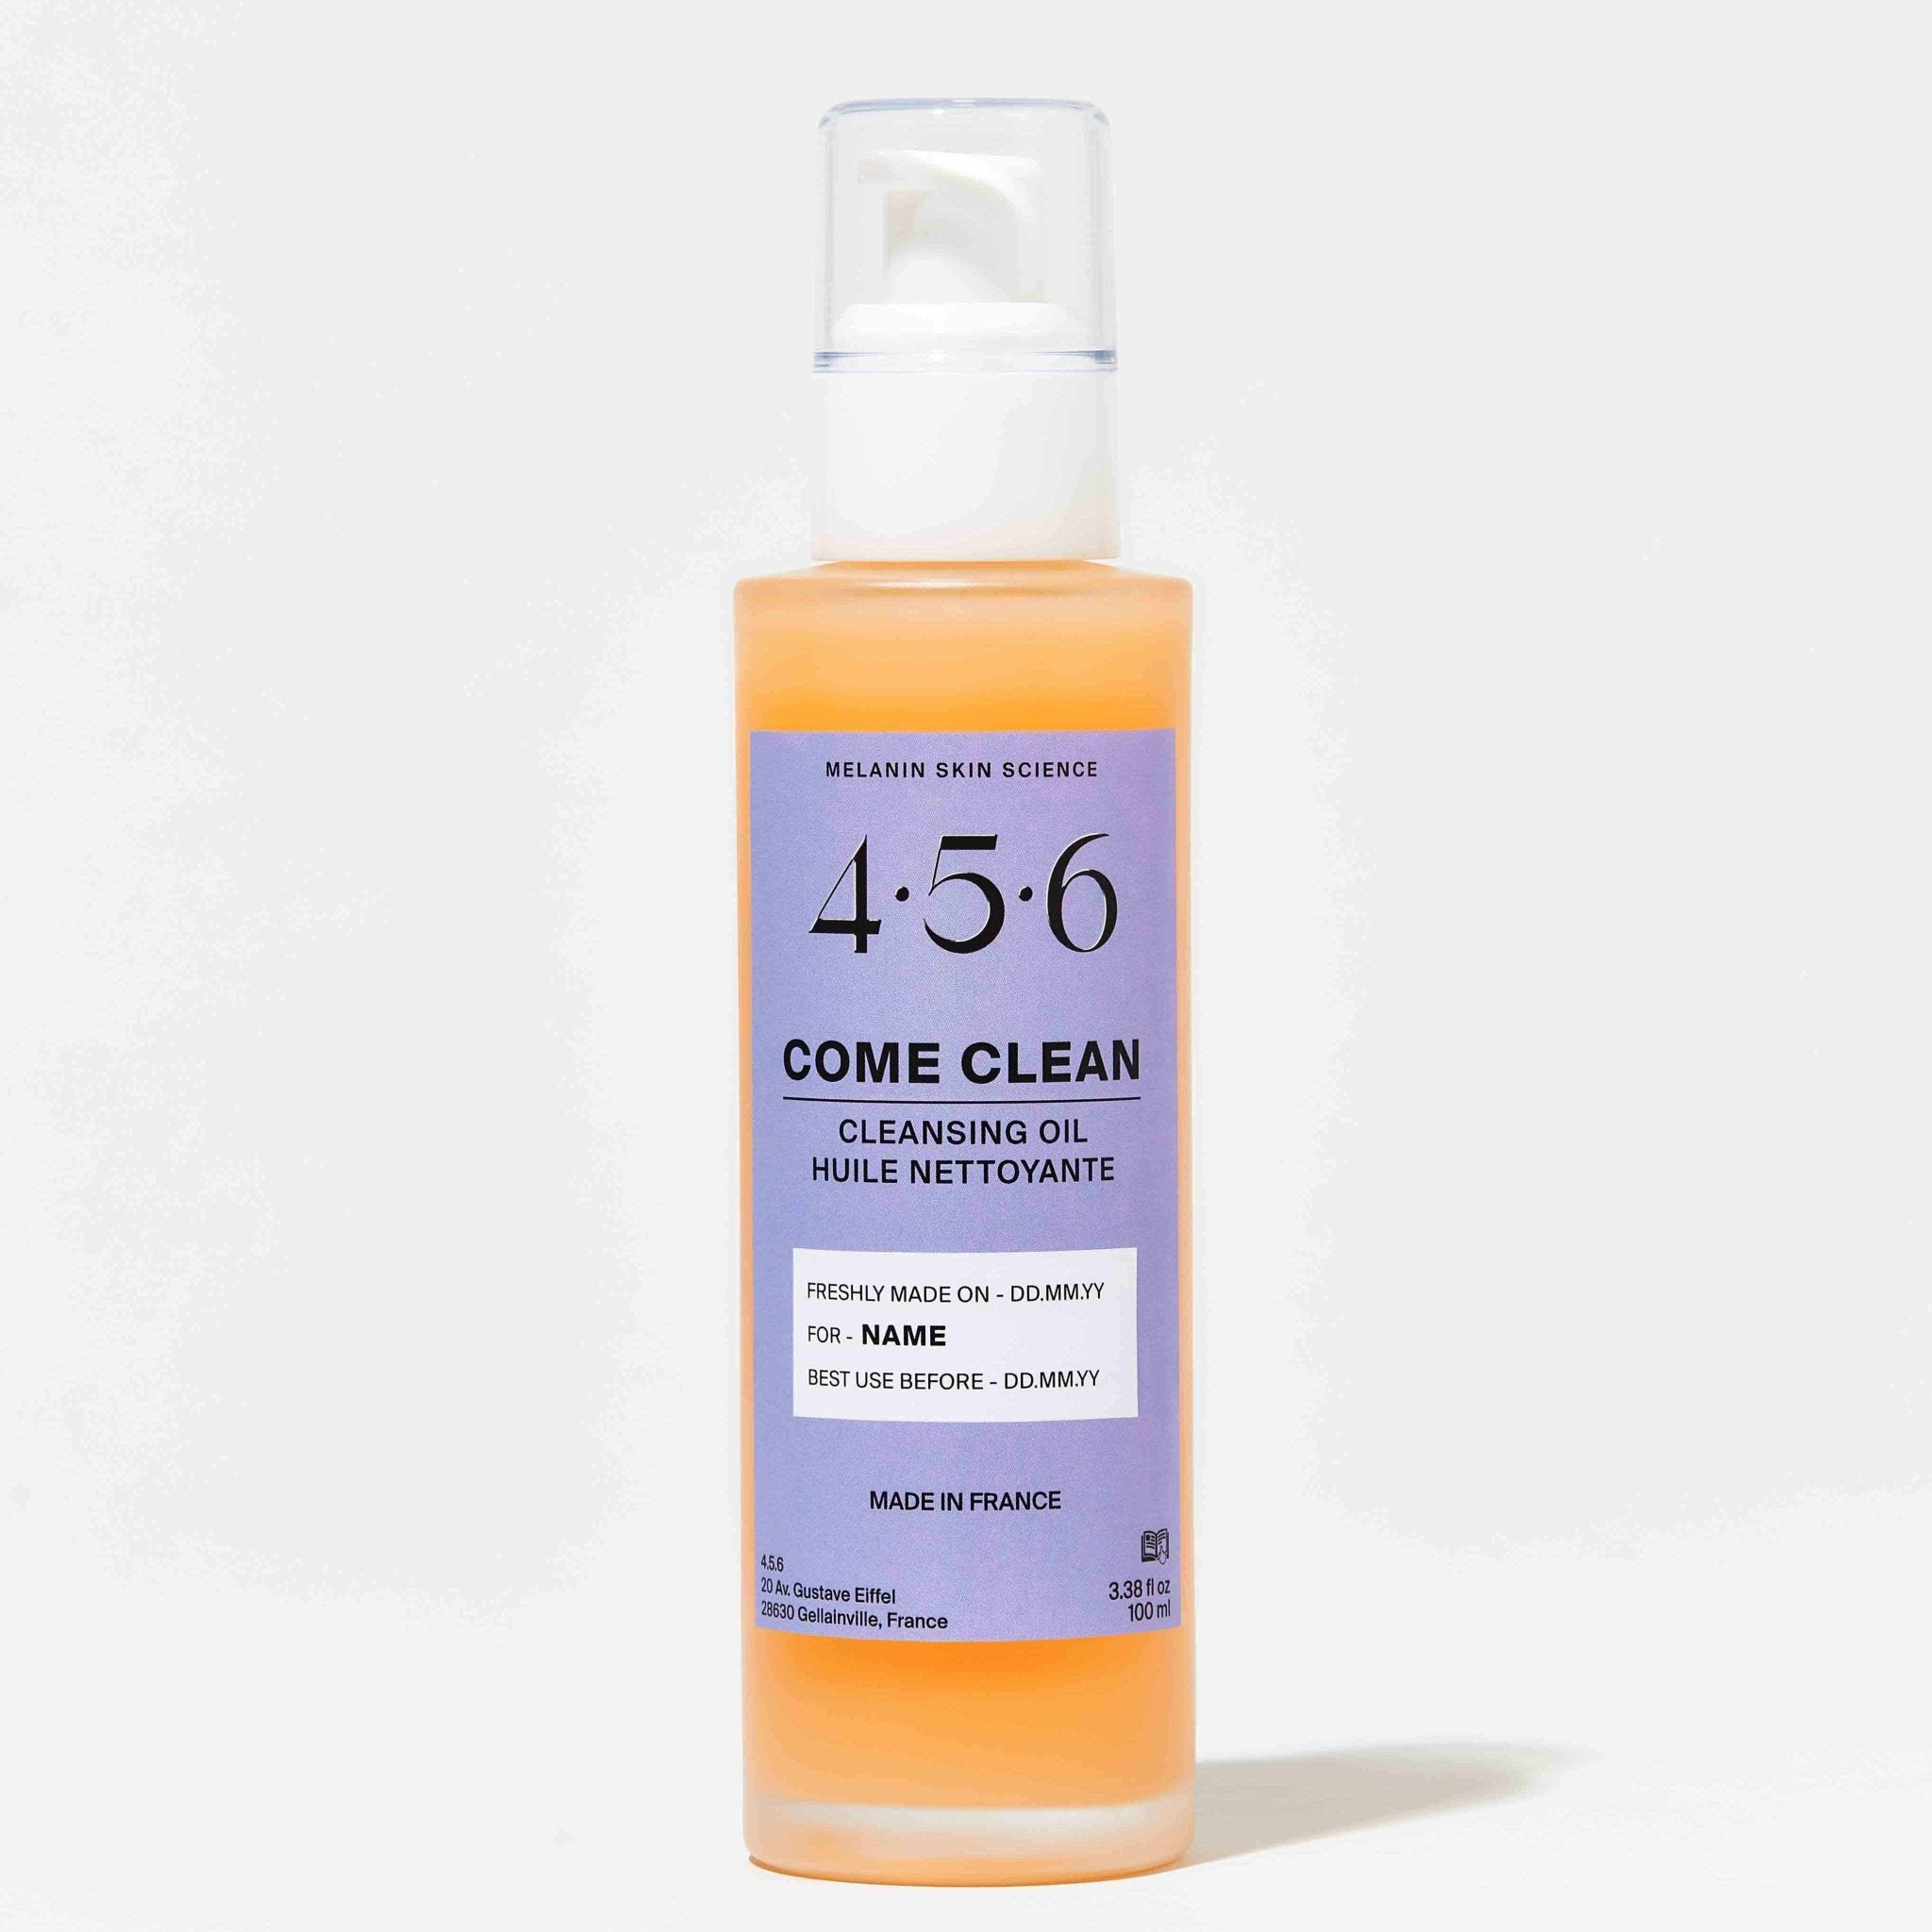 COME CLEAN - Cleansing Oil - 4.5.6 Skin